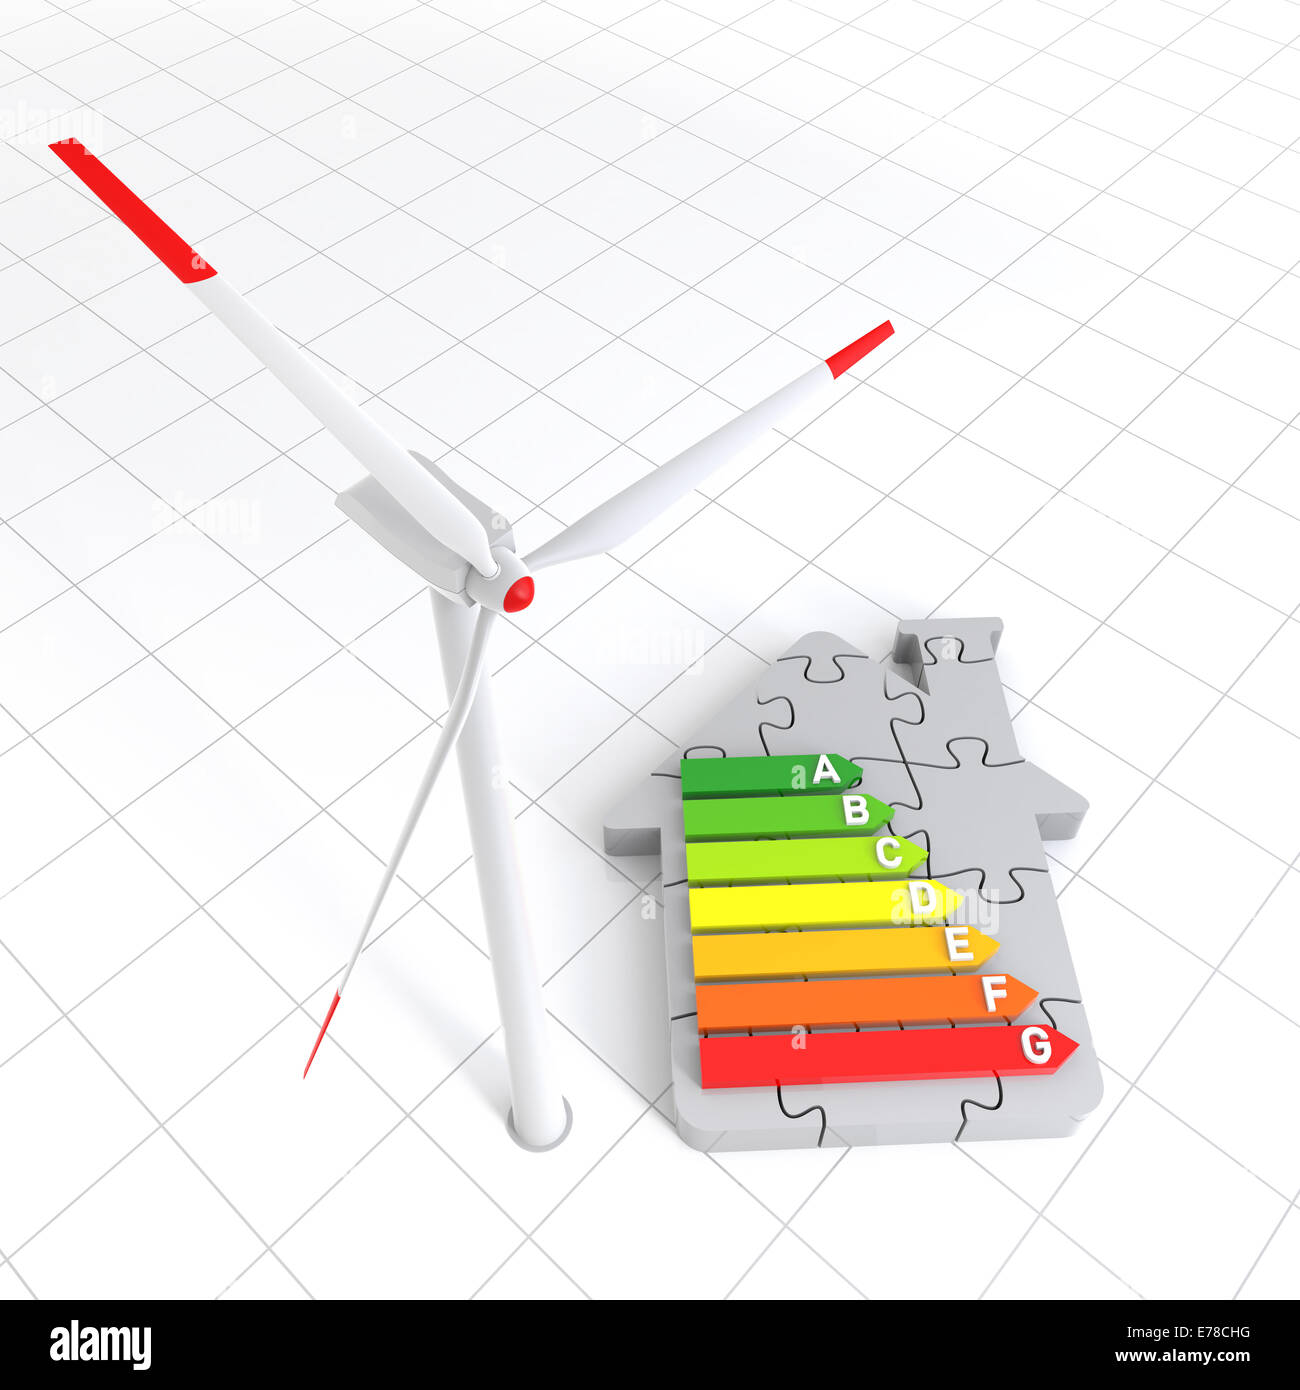 Energy Efficiency Home Puzzle and Wind Turbine. Digitally Generated Image. - Stock Image